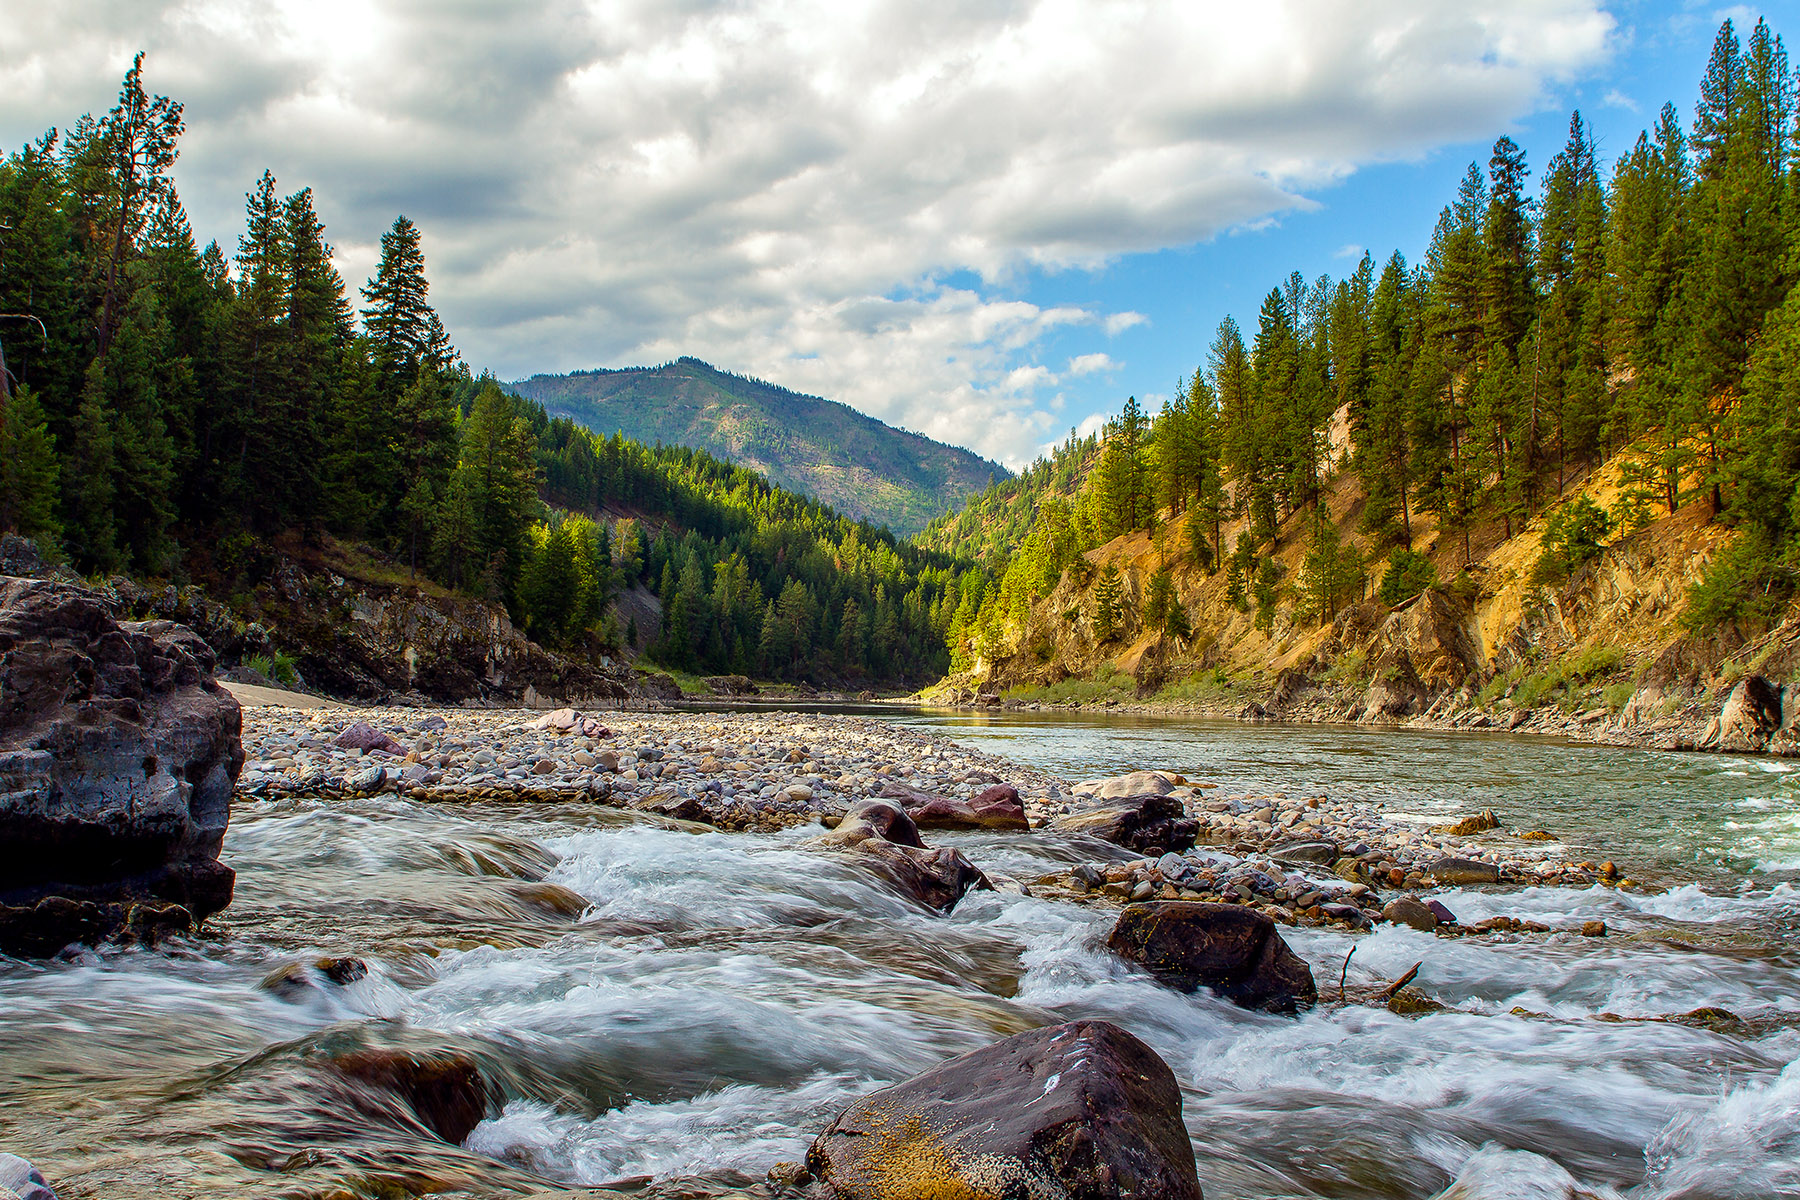 Clark Fork River west of Fish Creek - Wapiti Waters photo by Merle Ann Loman